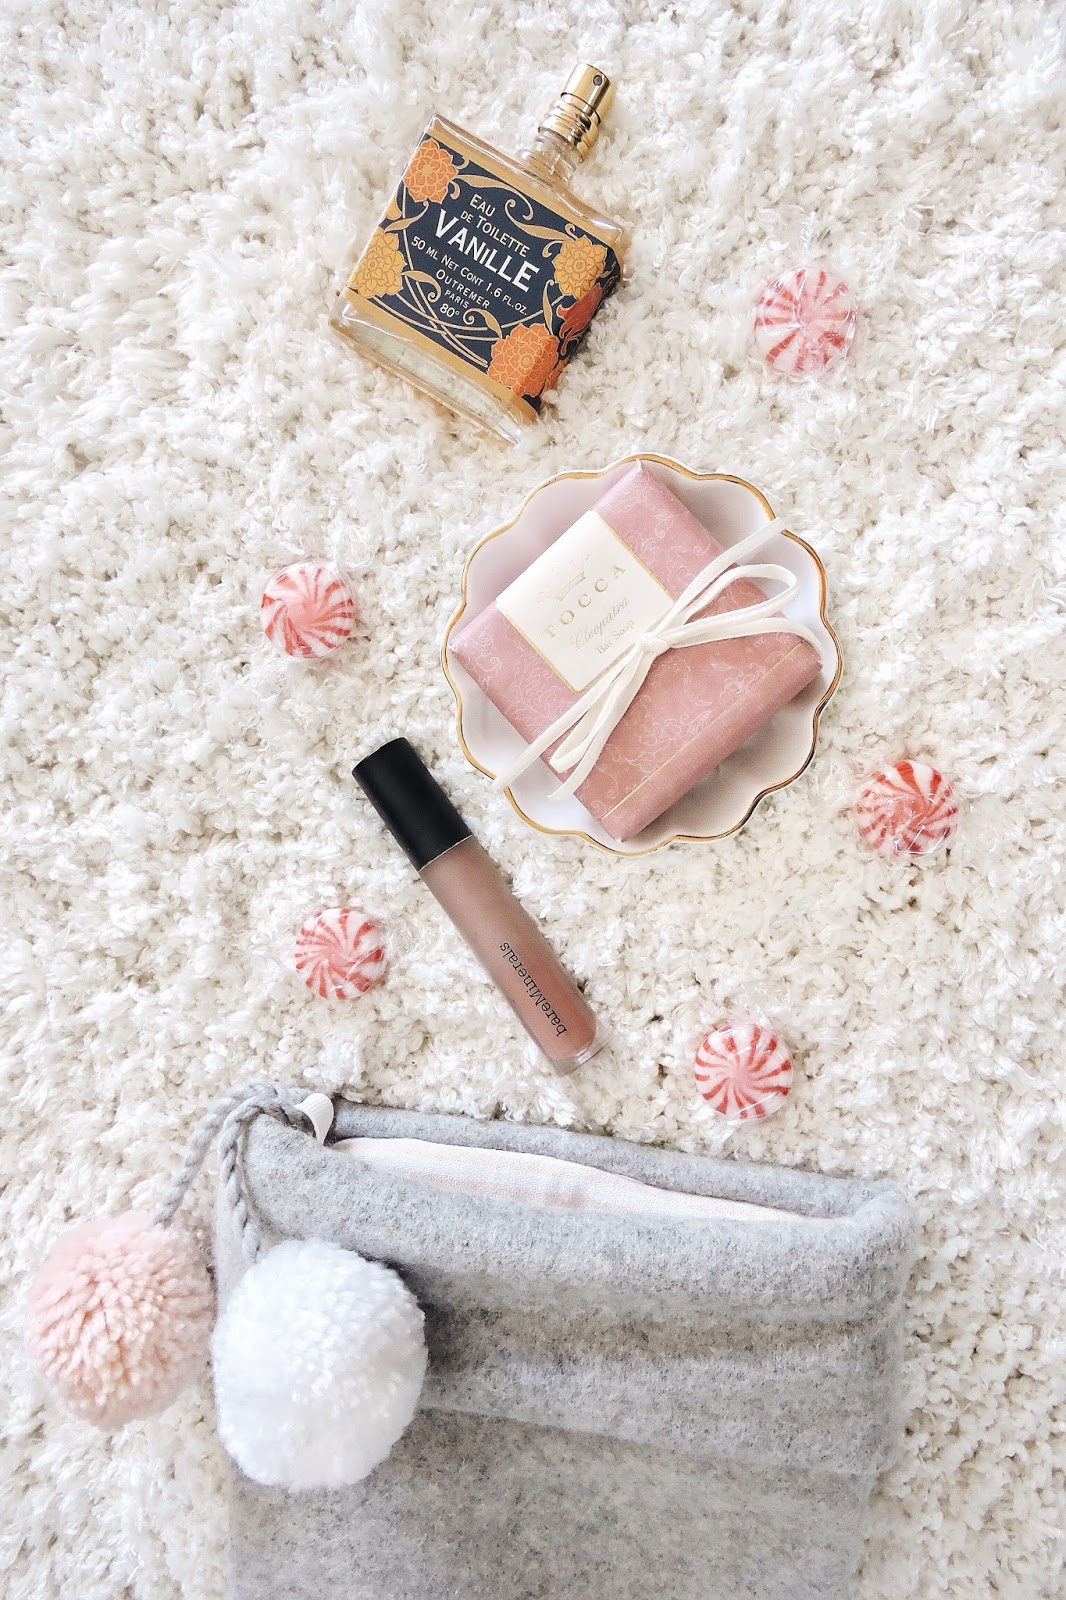 stocking stuffers for her favorite best three sugarly target anthropologie tocca outremer vanille perfume soap target sugar paper pom pom bare minerals gen nude icon matte liquid lipstick kylie cosmetics makeup